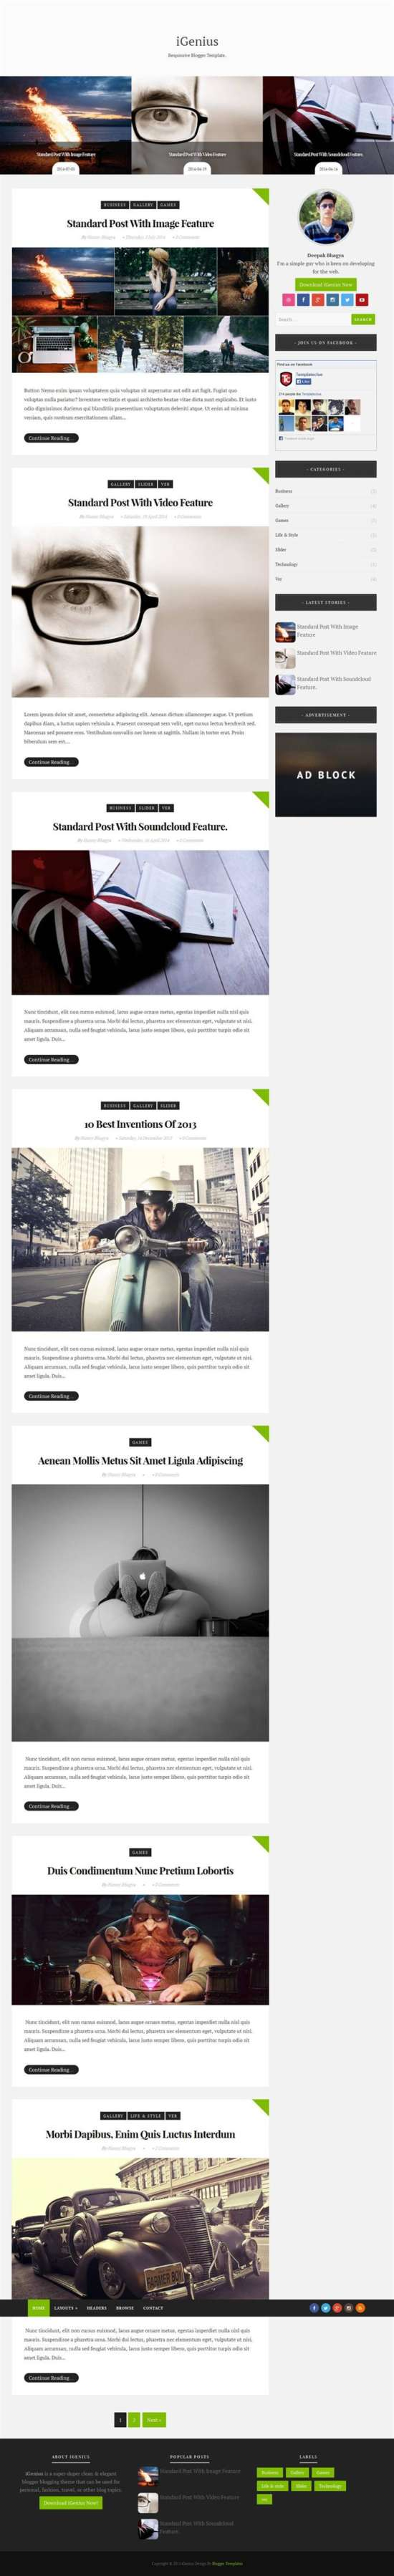 igenius_blogger_template_screenshot